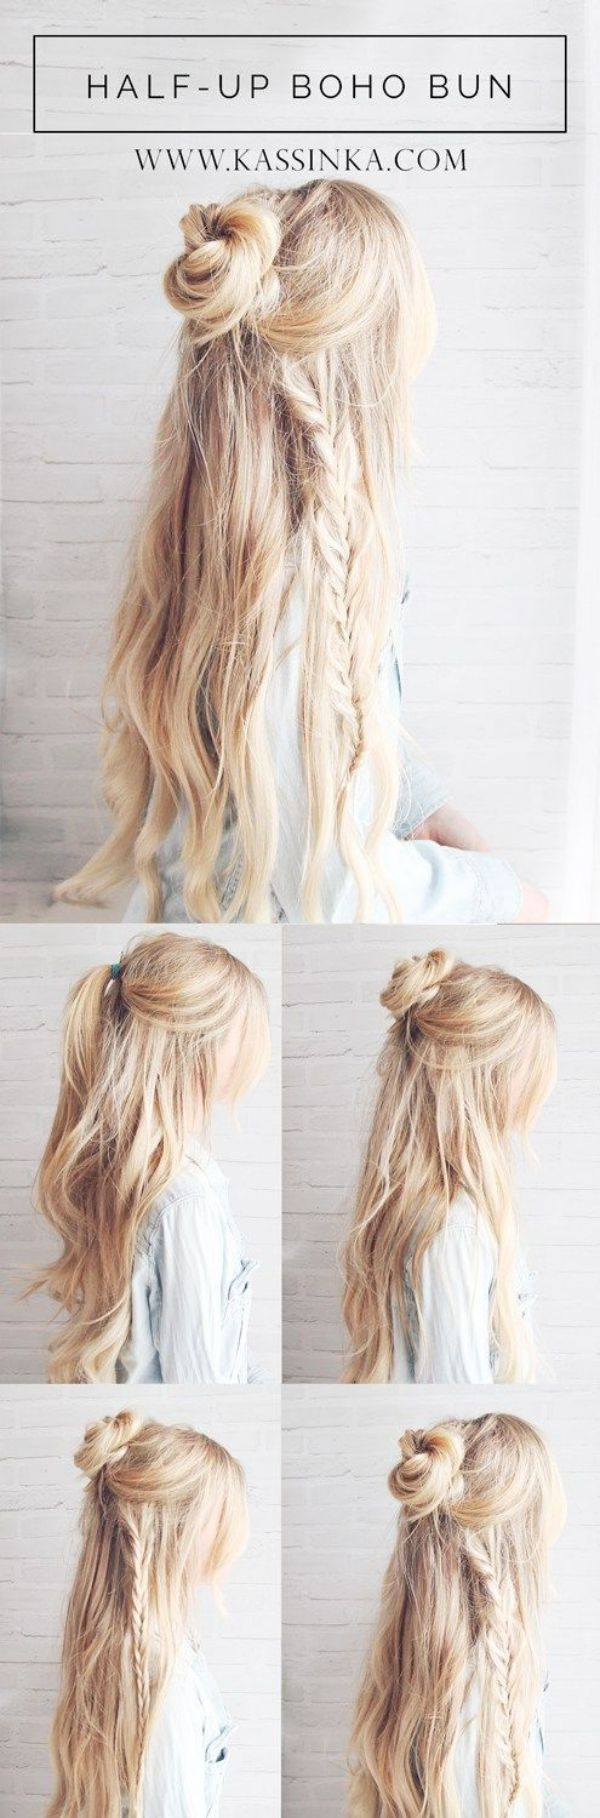 135 best Hairstyles images on Pinterest | Hairstyle ideas, Wedding ...